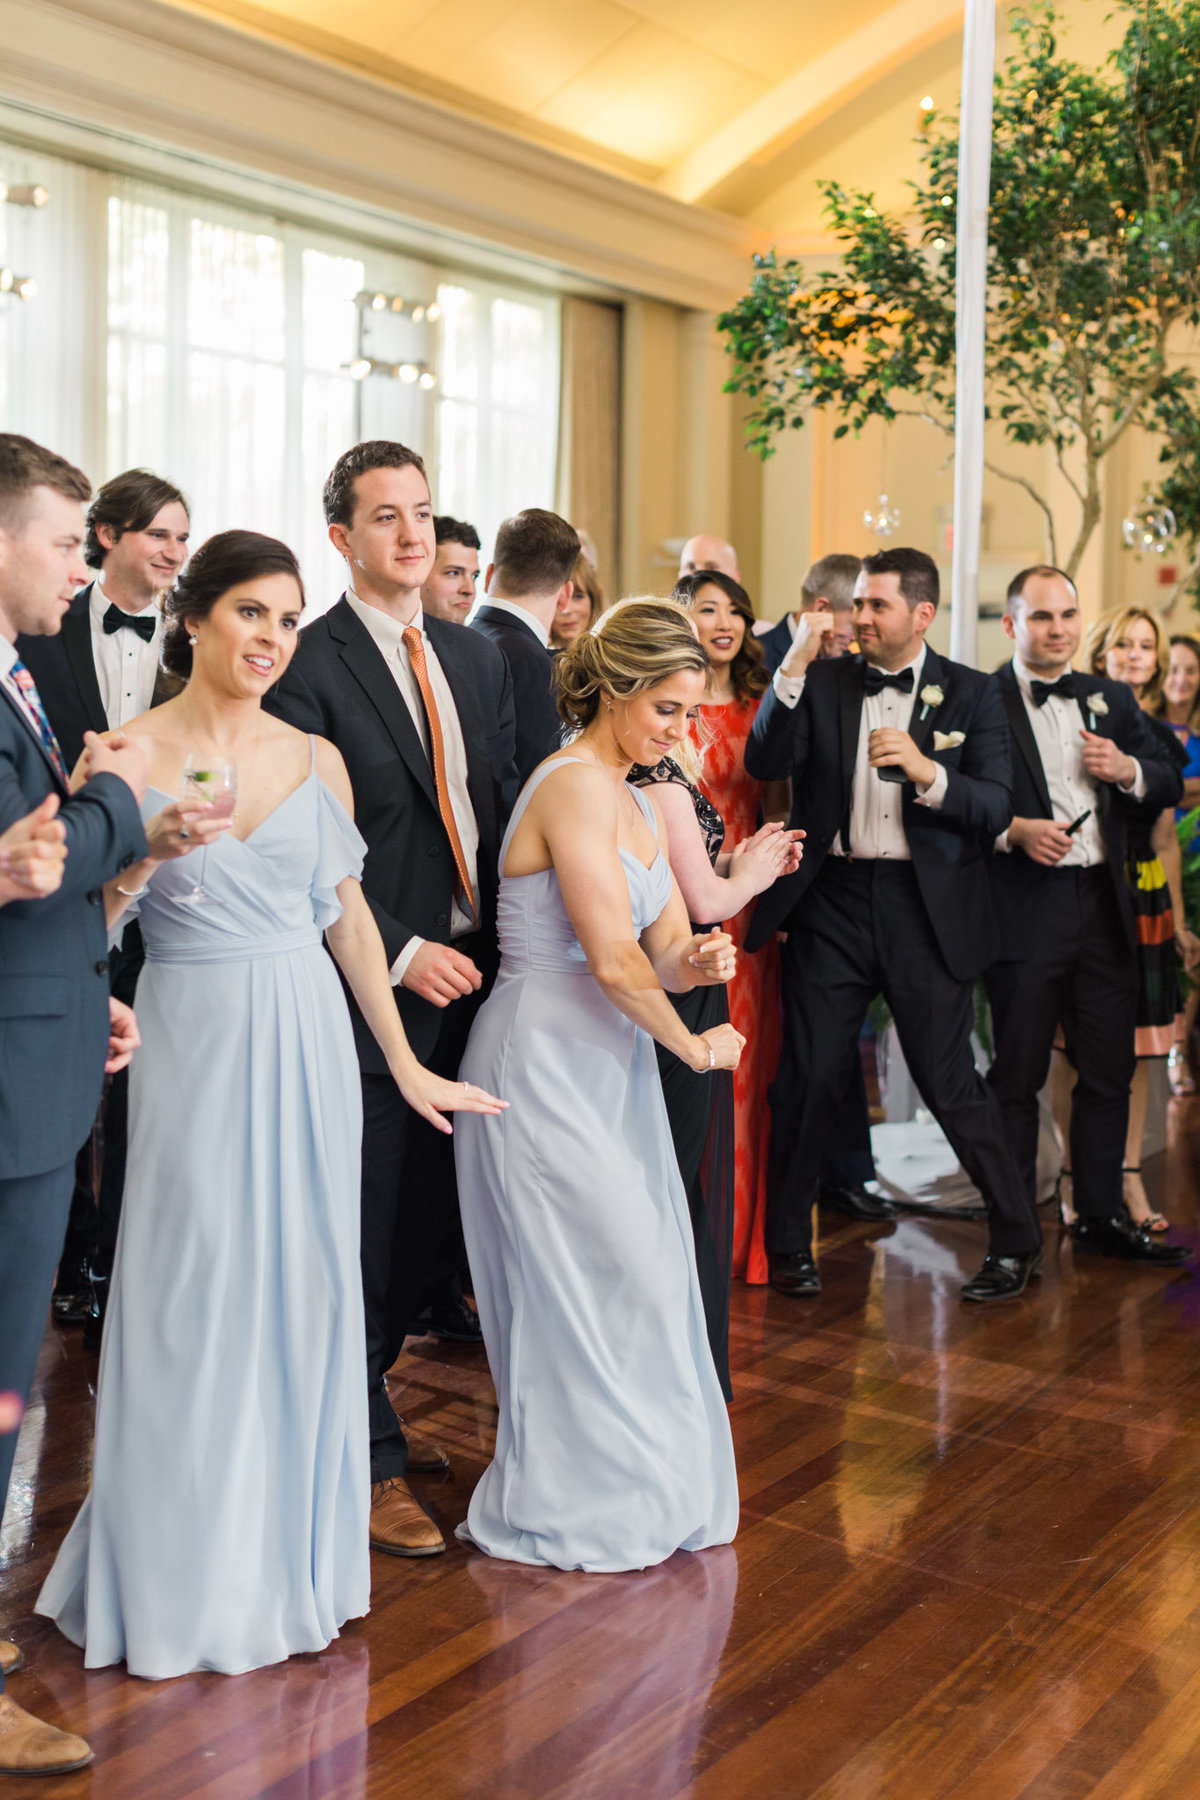 The party starts off quickly as the bride and groom are announced for their first dance. Photo by luxury destination wedding photographer Rebecca Cerasani.